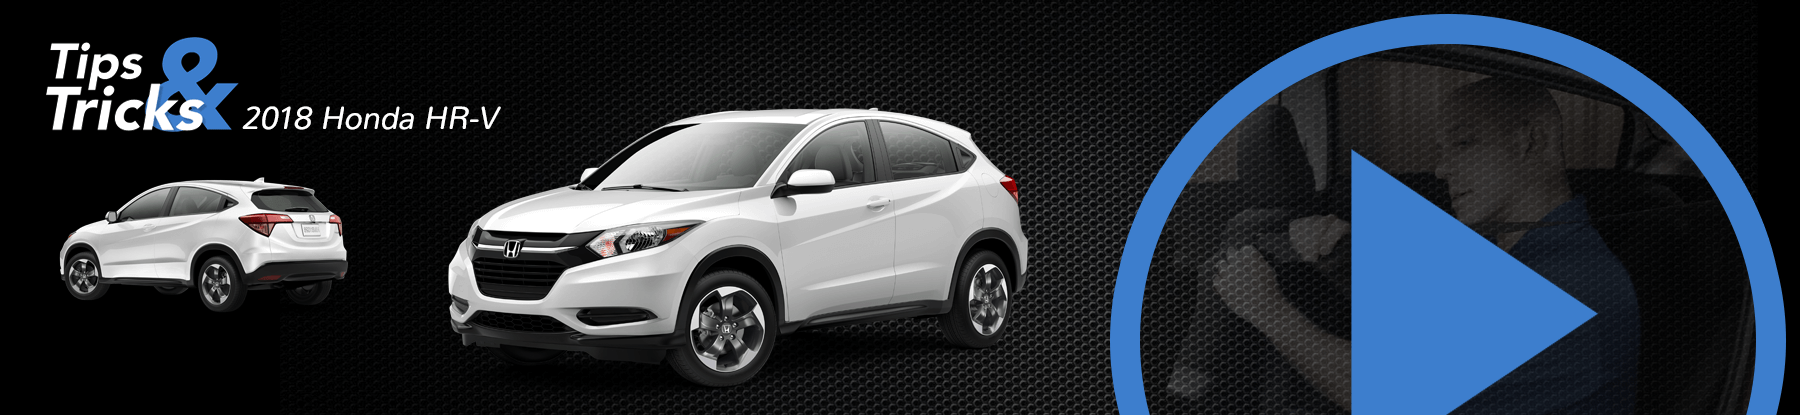 2018 Honda HR-V Tips and Tricks Banner